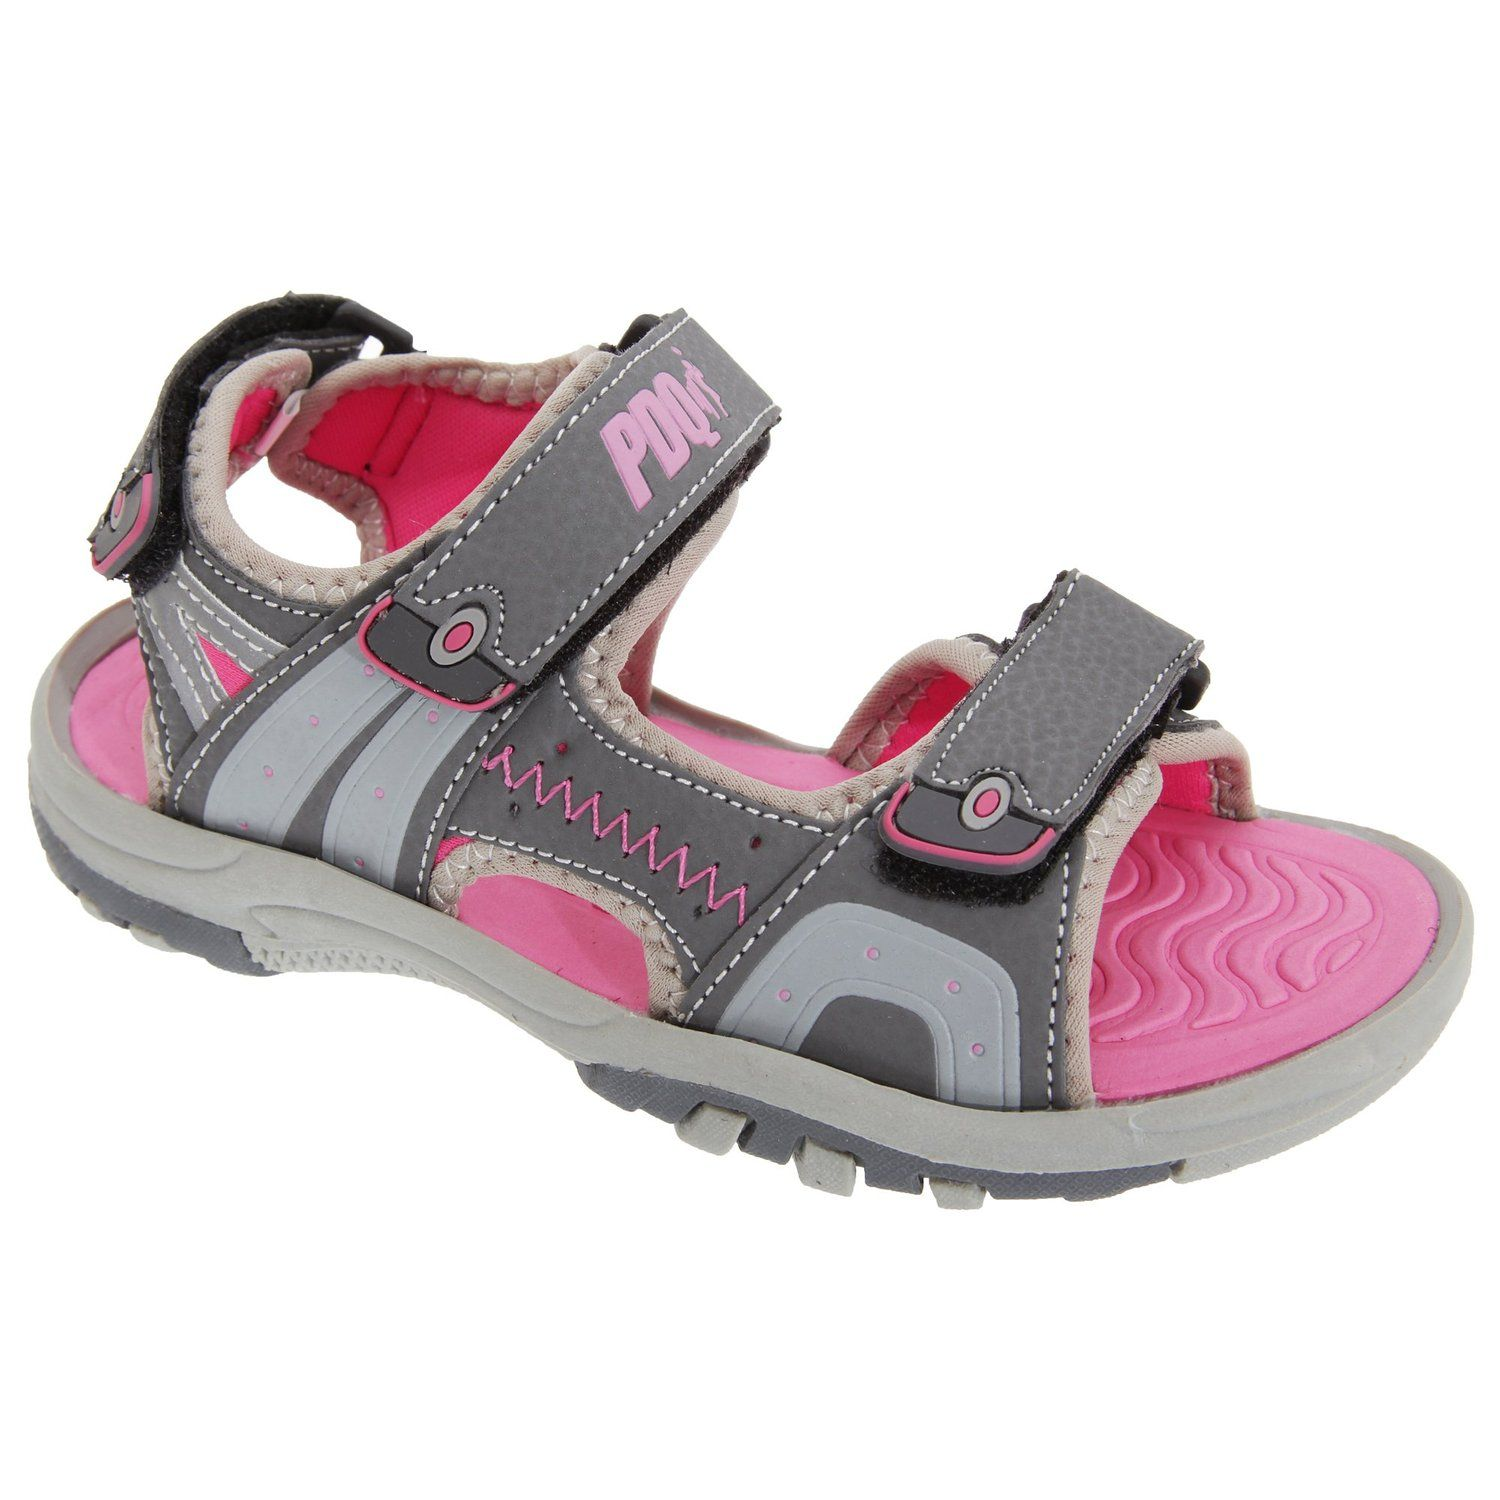 PDQ Kids Uni 3 Touch Fastening Sports Sandals Discover this